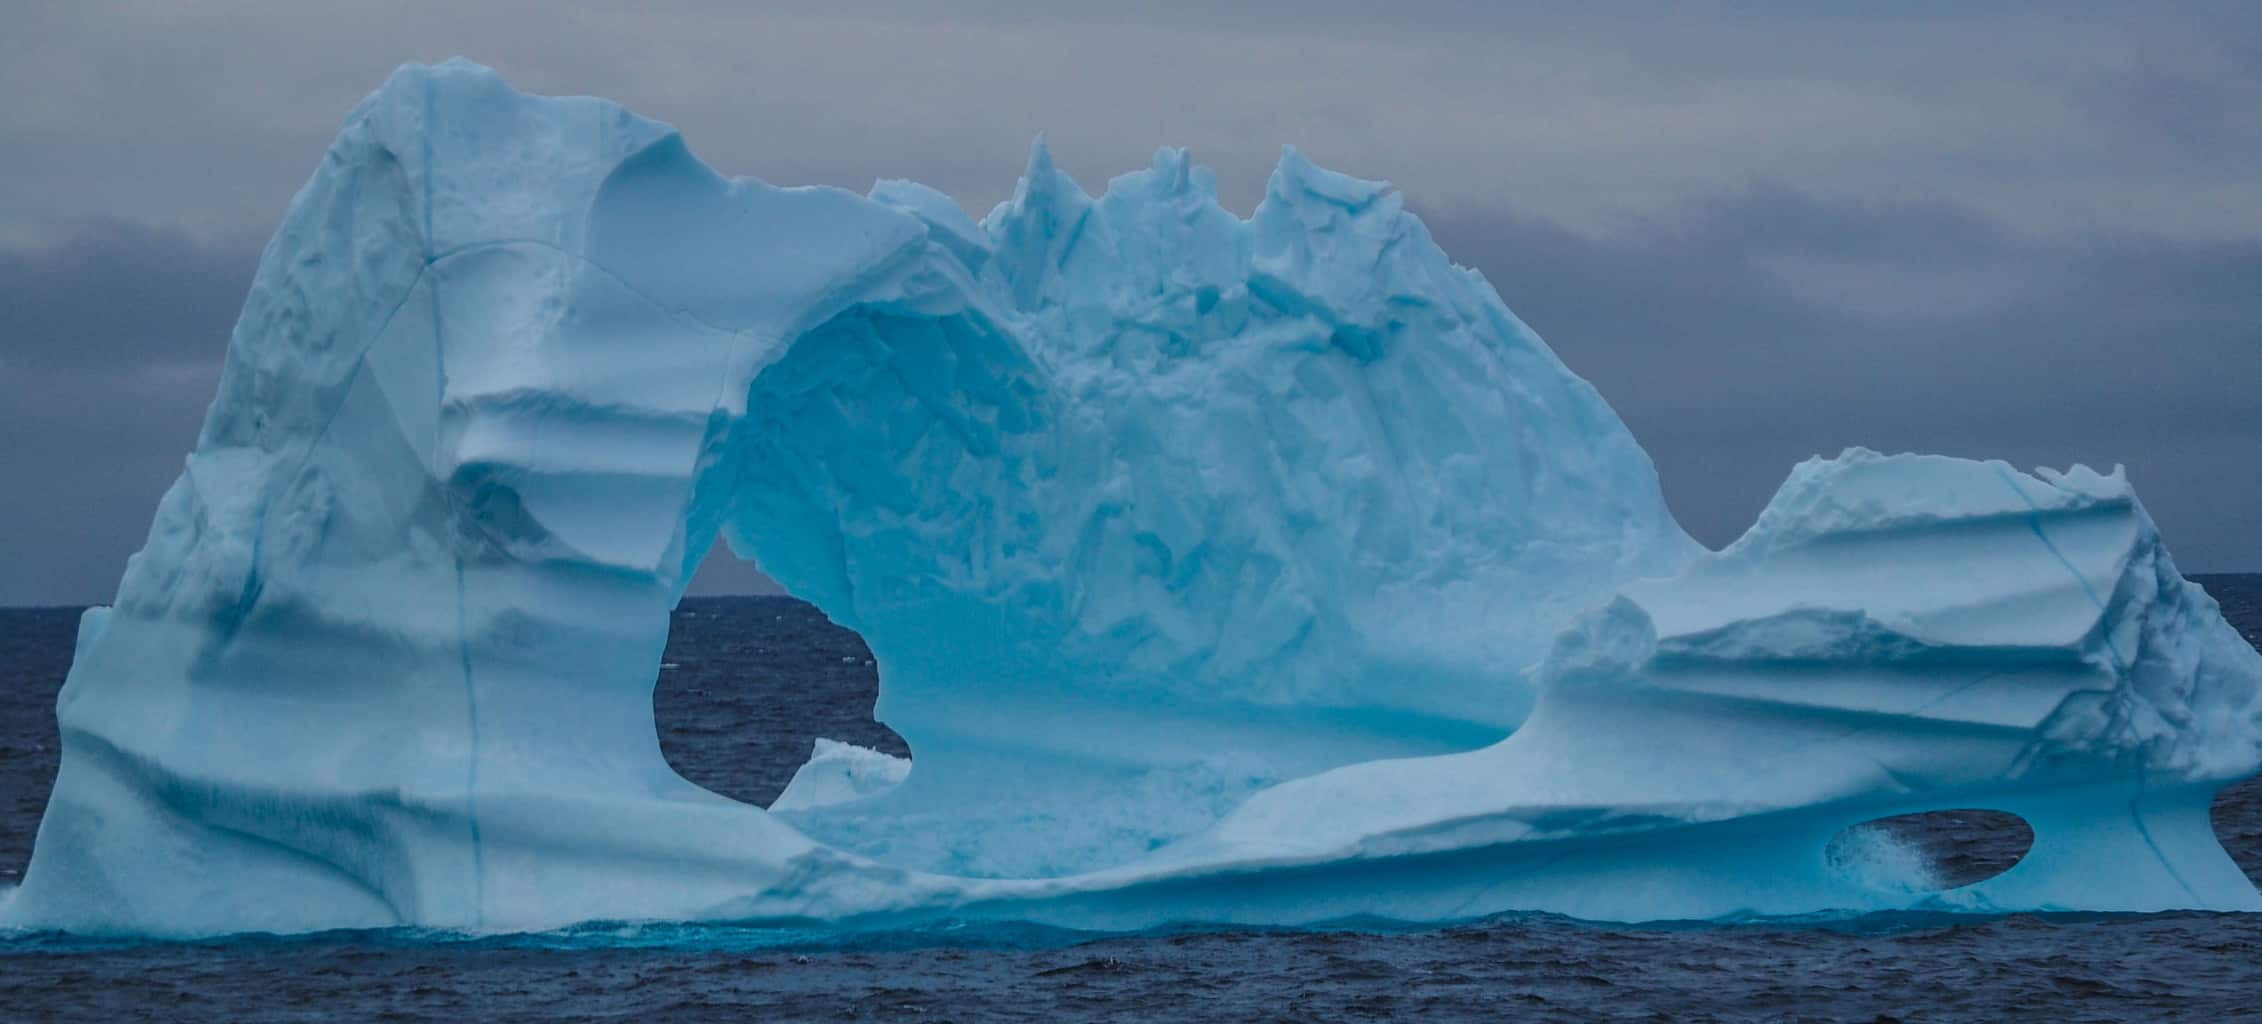 One of many thousands of icebergs floating around